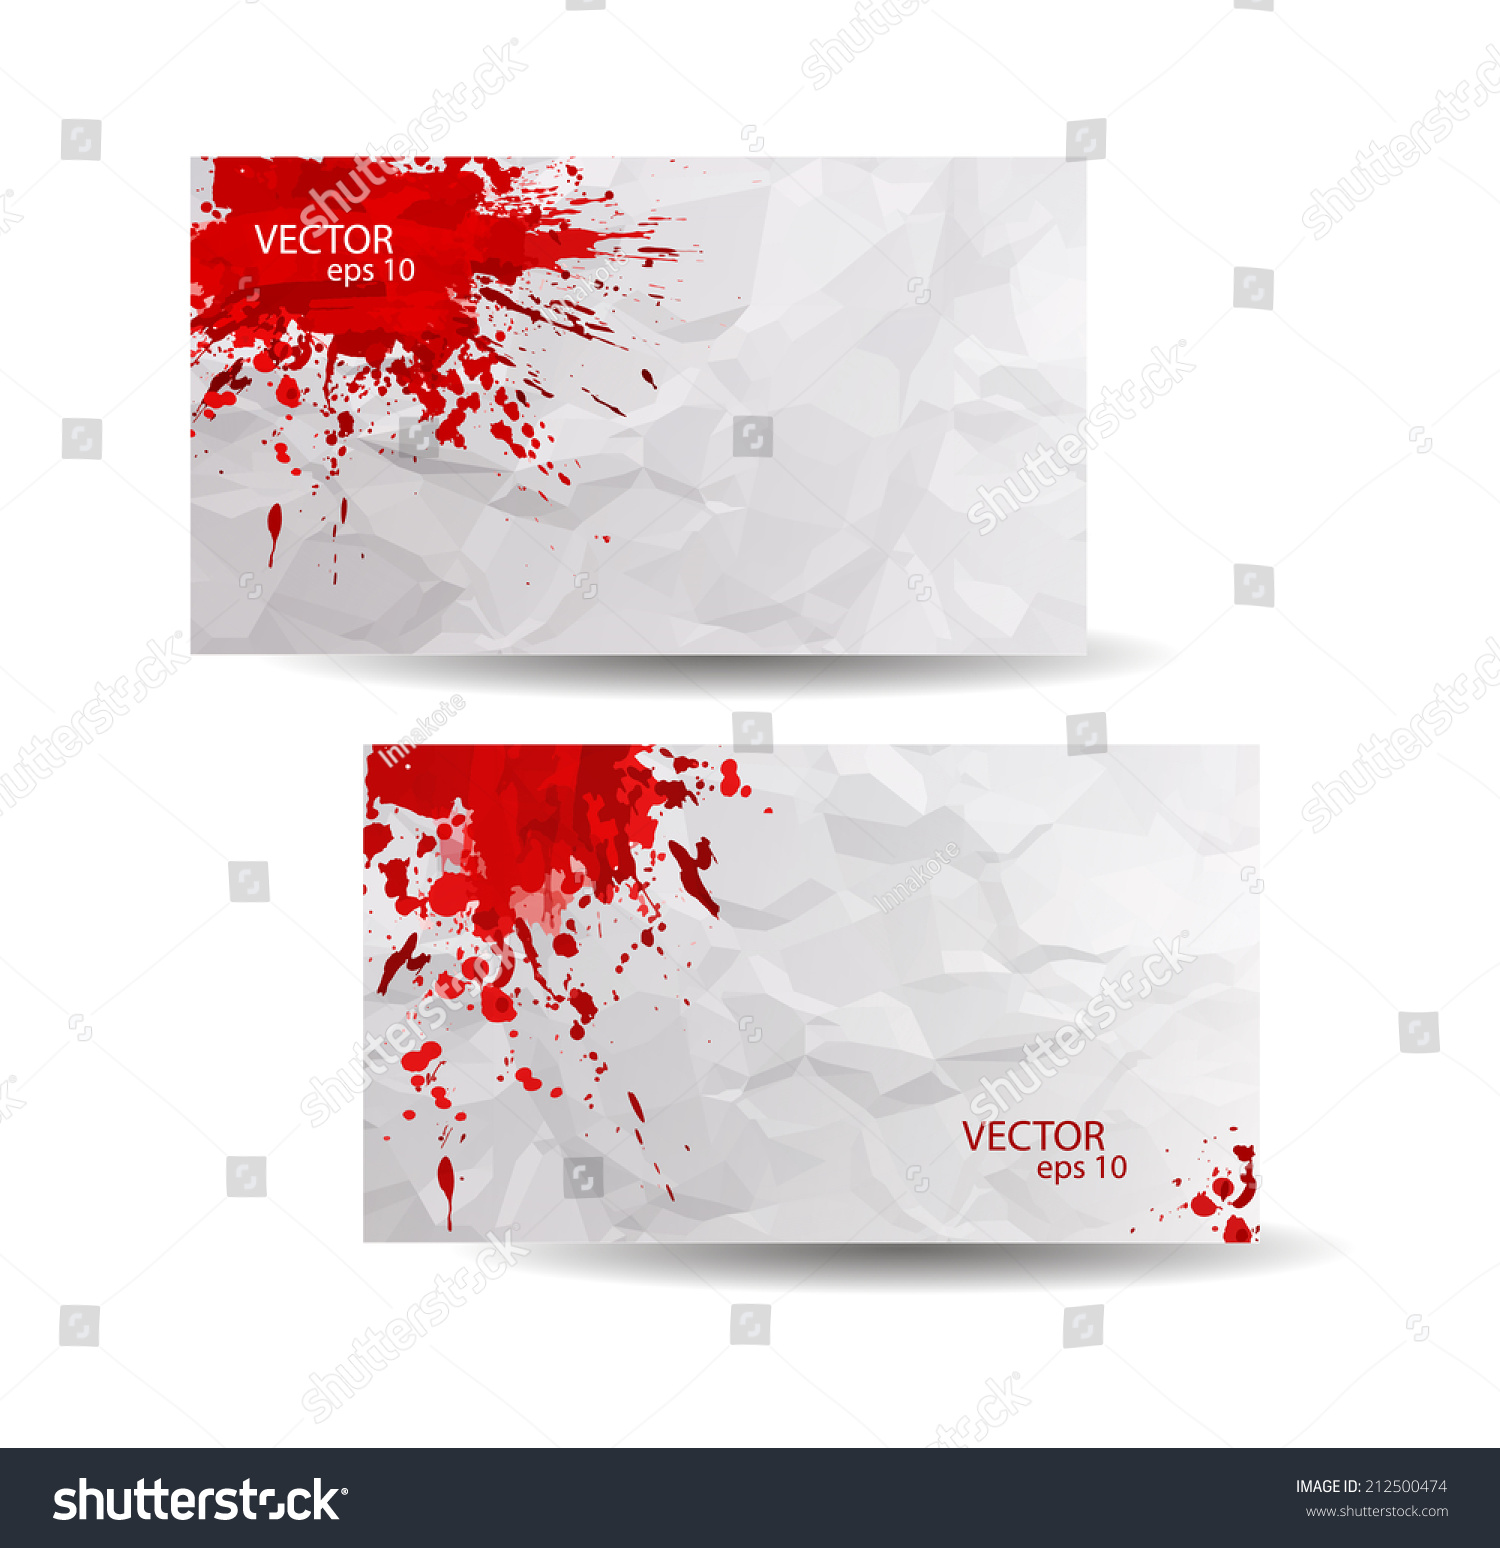 Business cards template red abstract spray stock vector 212500474 business cards template with red abstract spray paint crumpled paper background hand drawn colourmoves